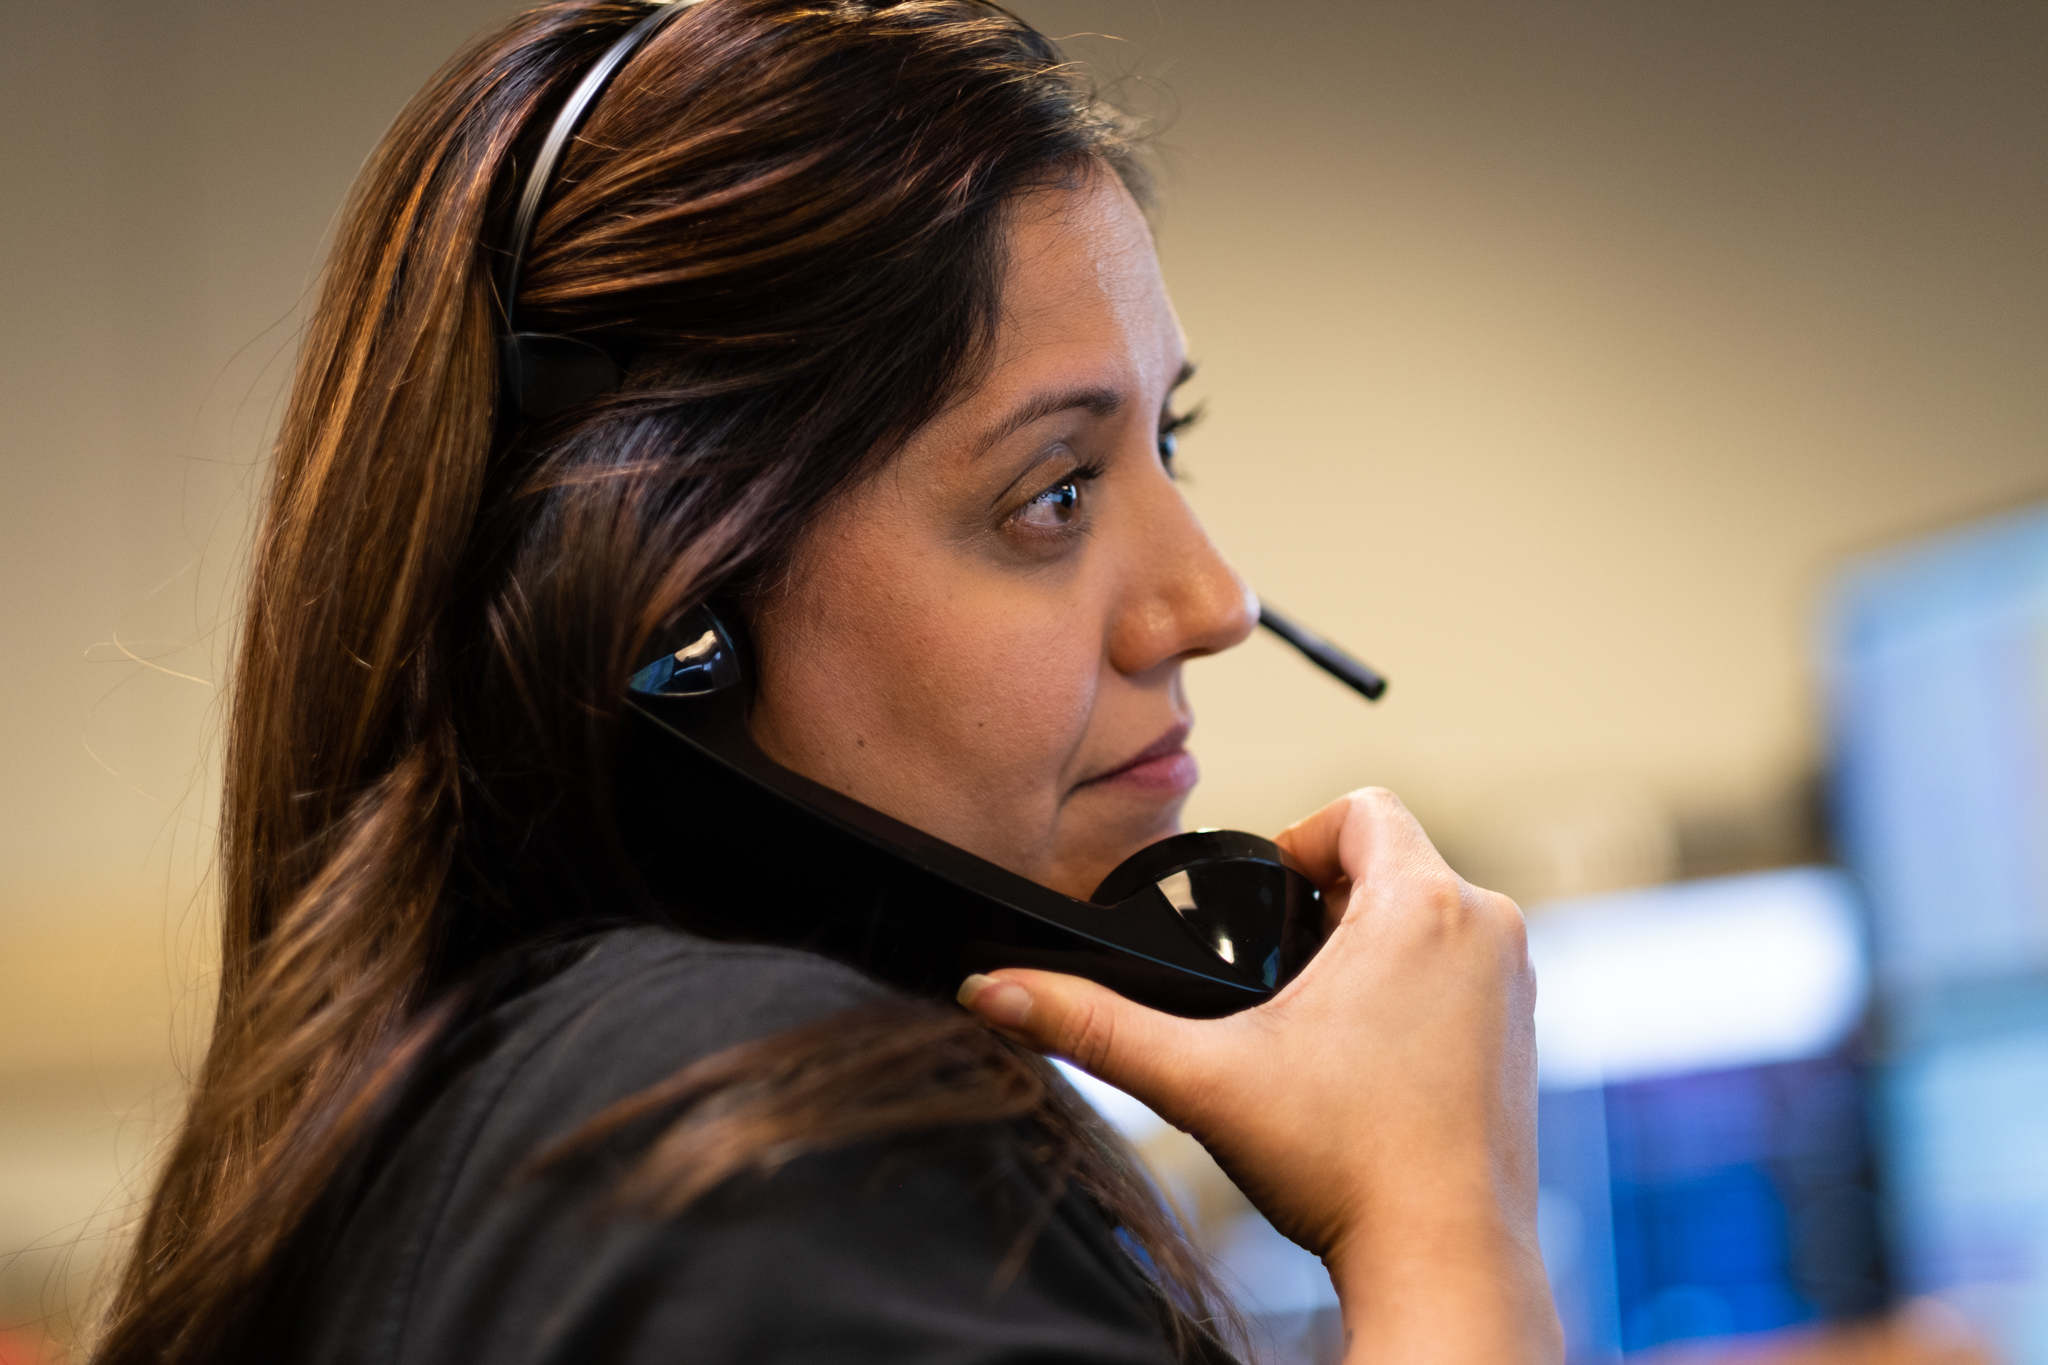 Woman smiling while talking on a phone